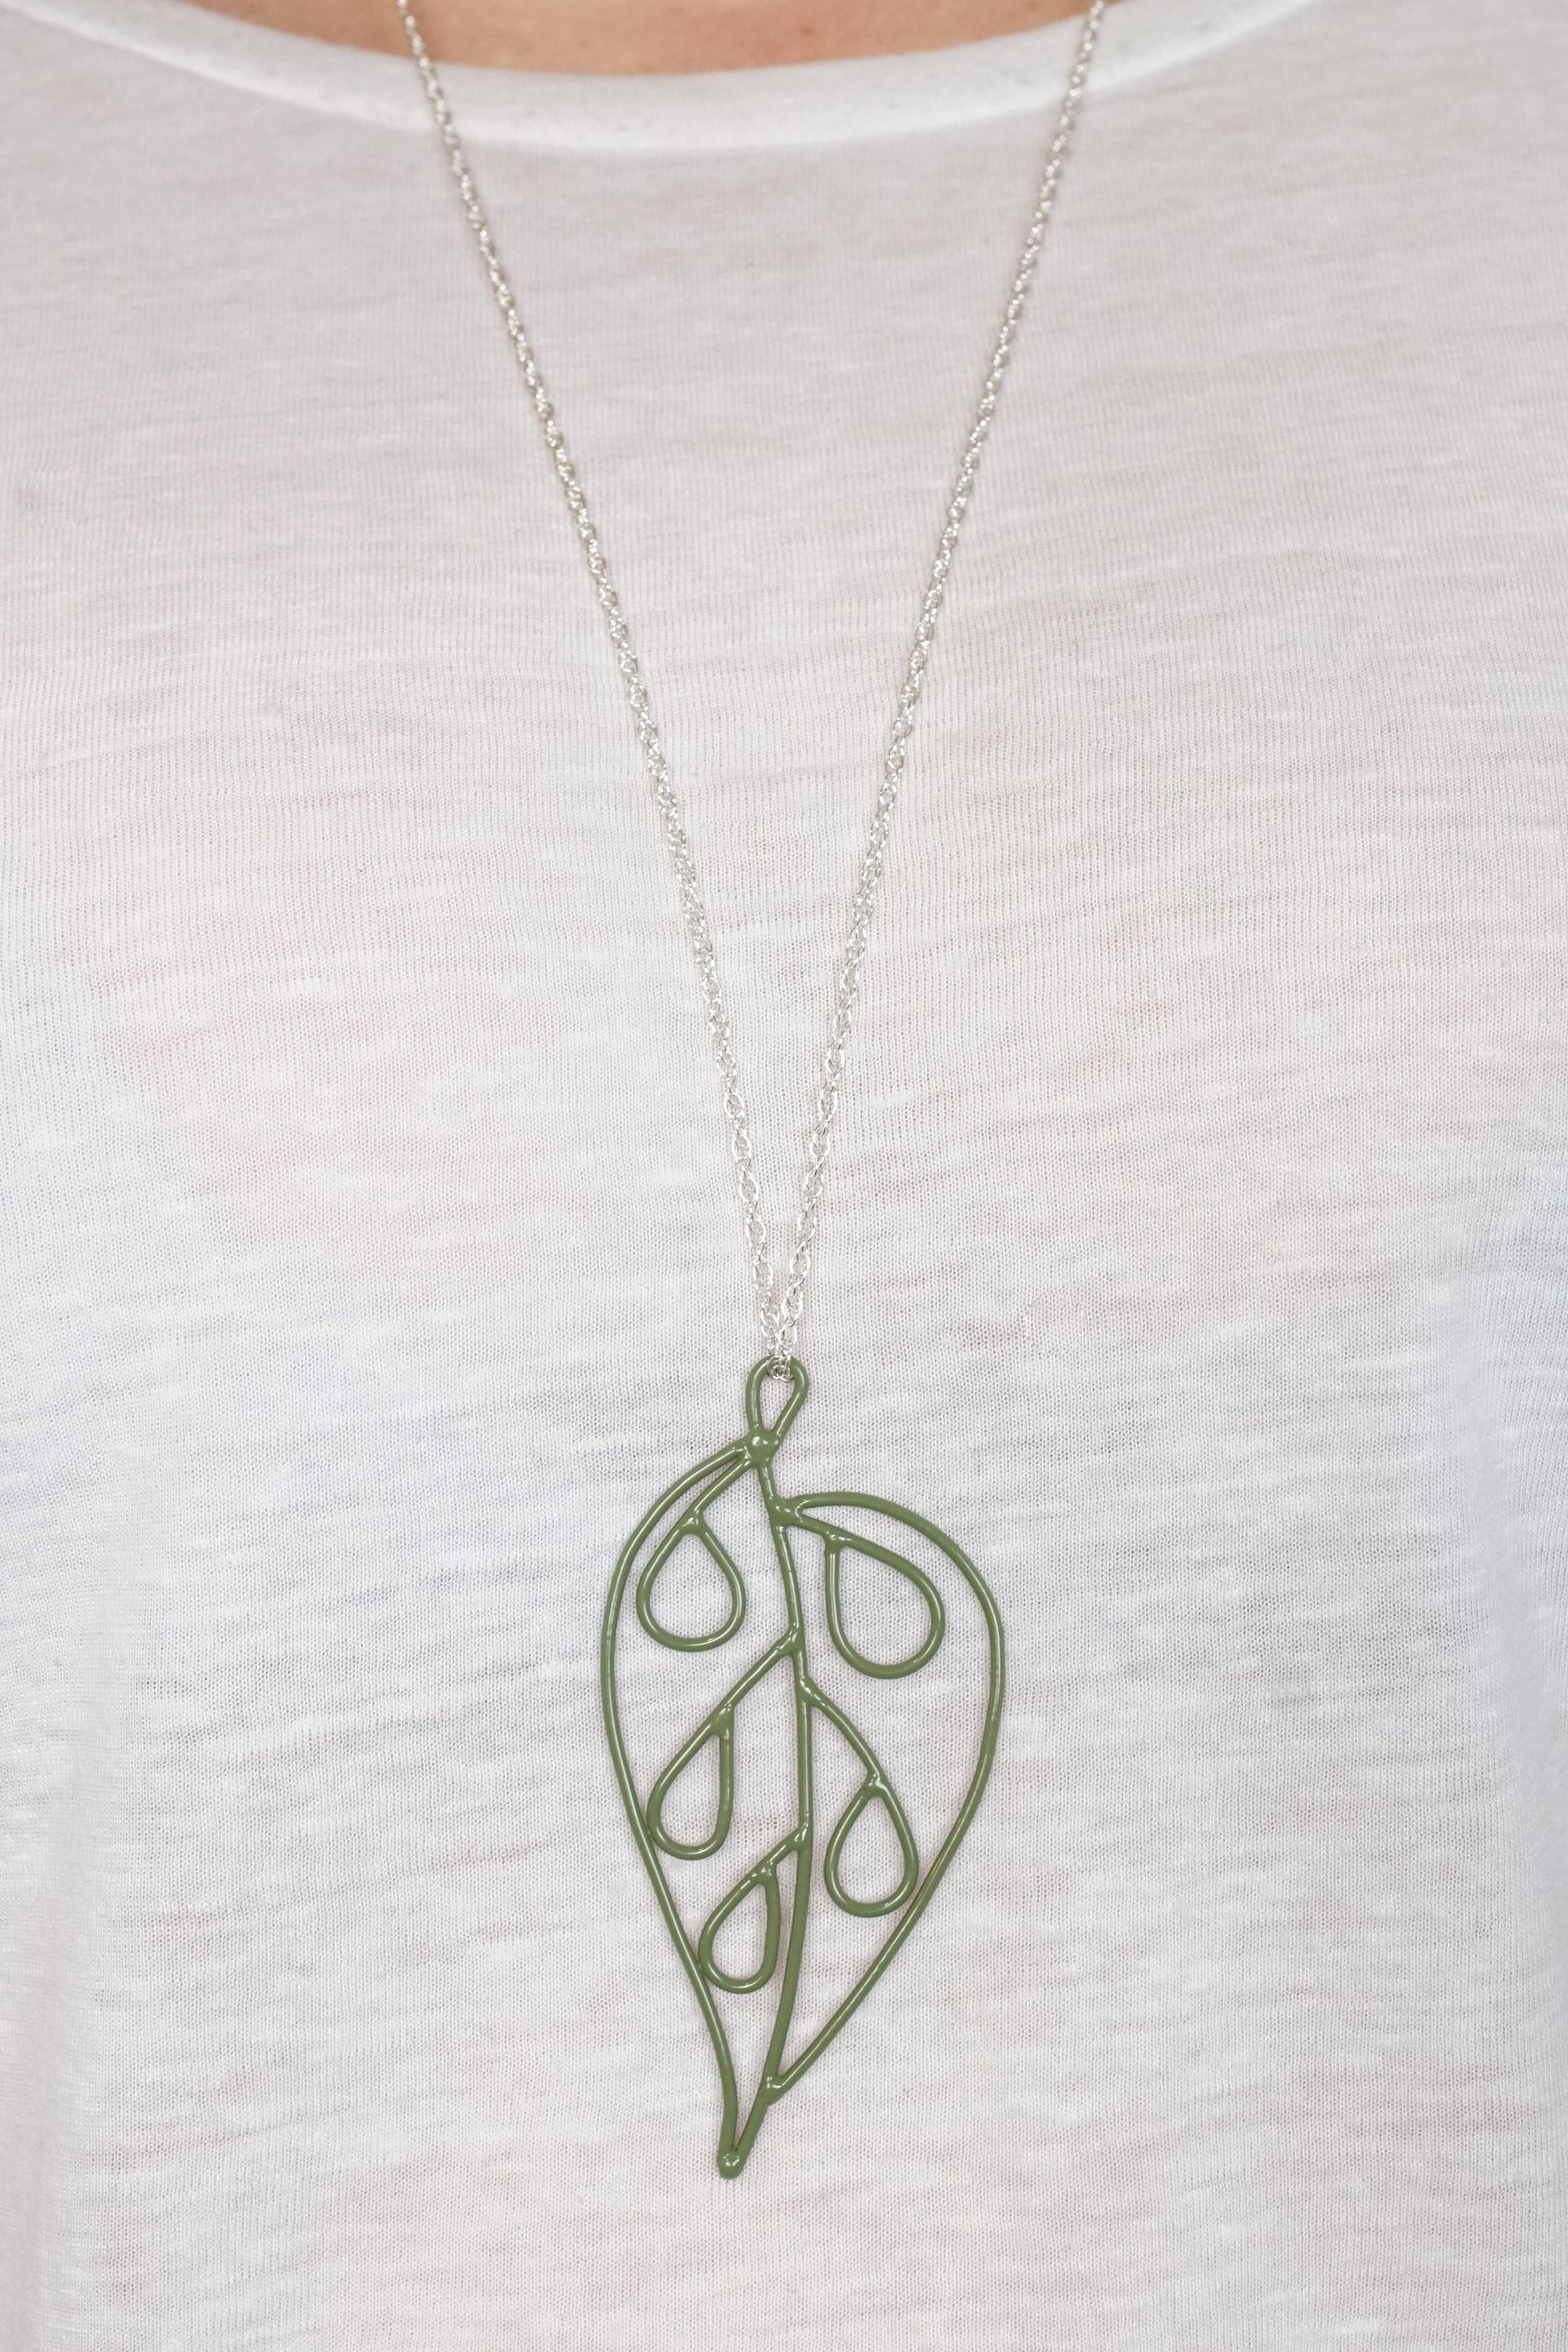 Ada Long Pendant in Olive Green